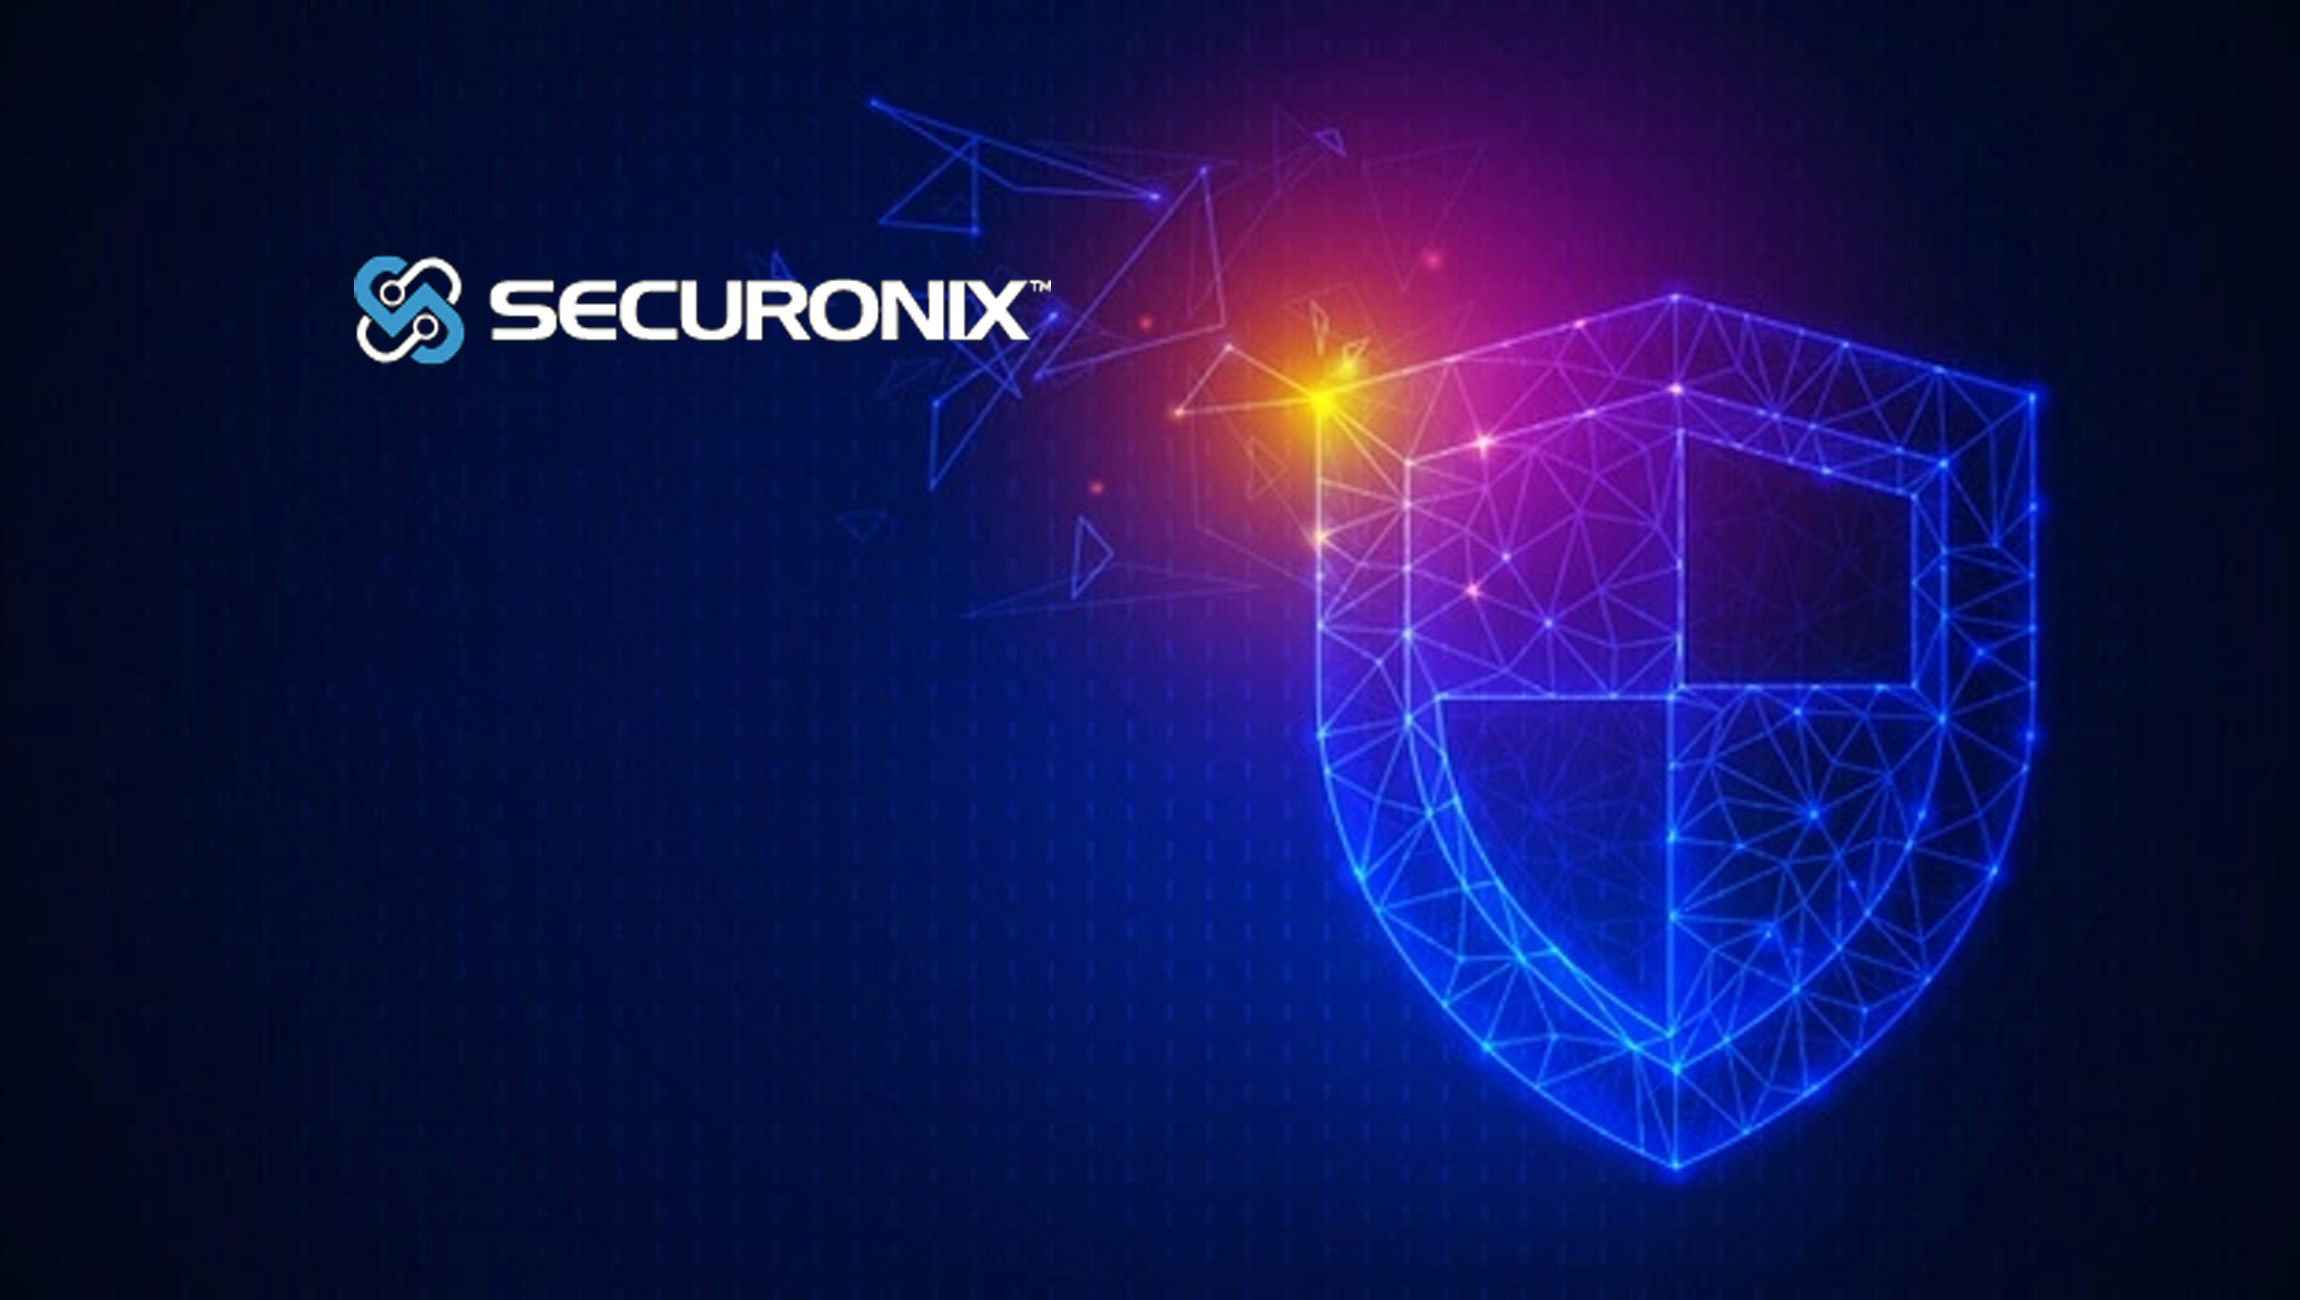 Securonix Named a Leader for Third Consecutive Time in the 2021 Gartner Magic Quadrant for Security Information and Event Management